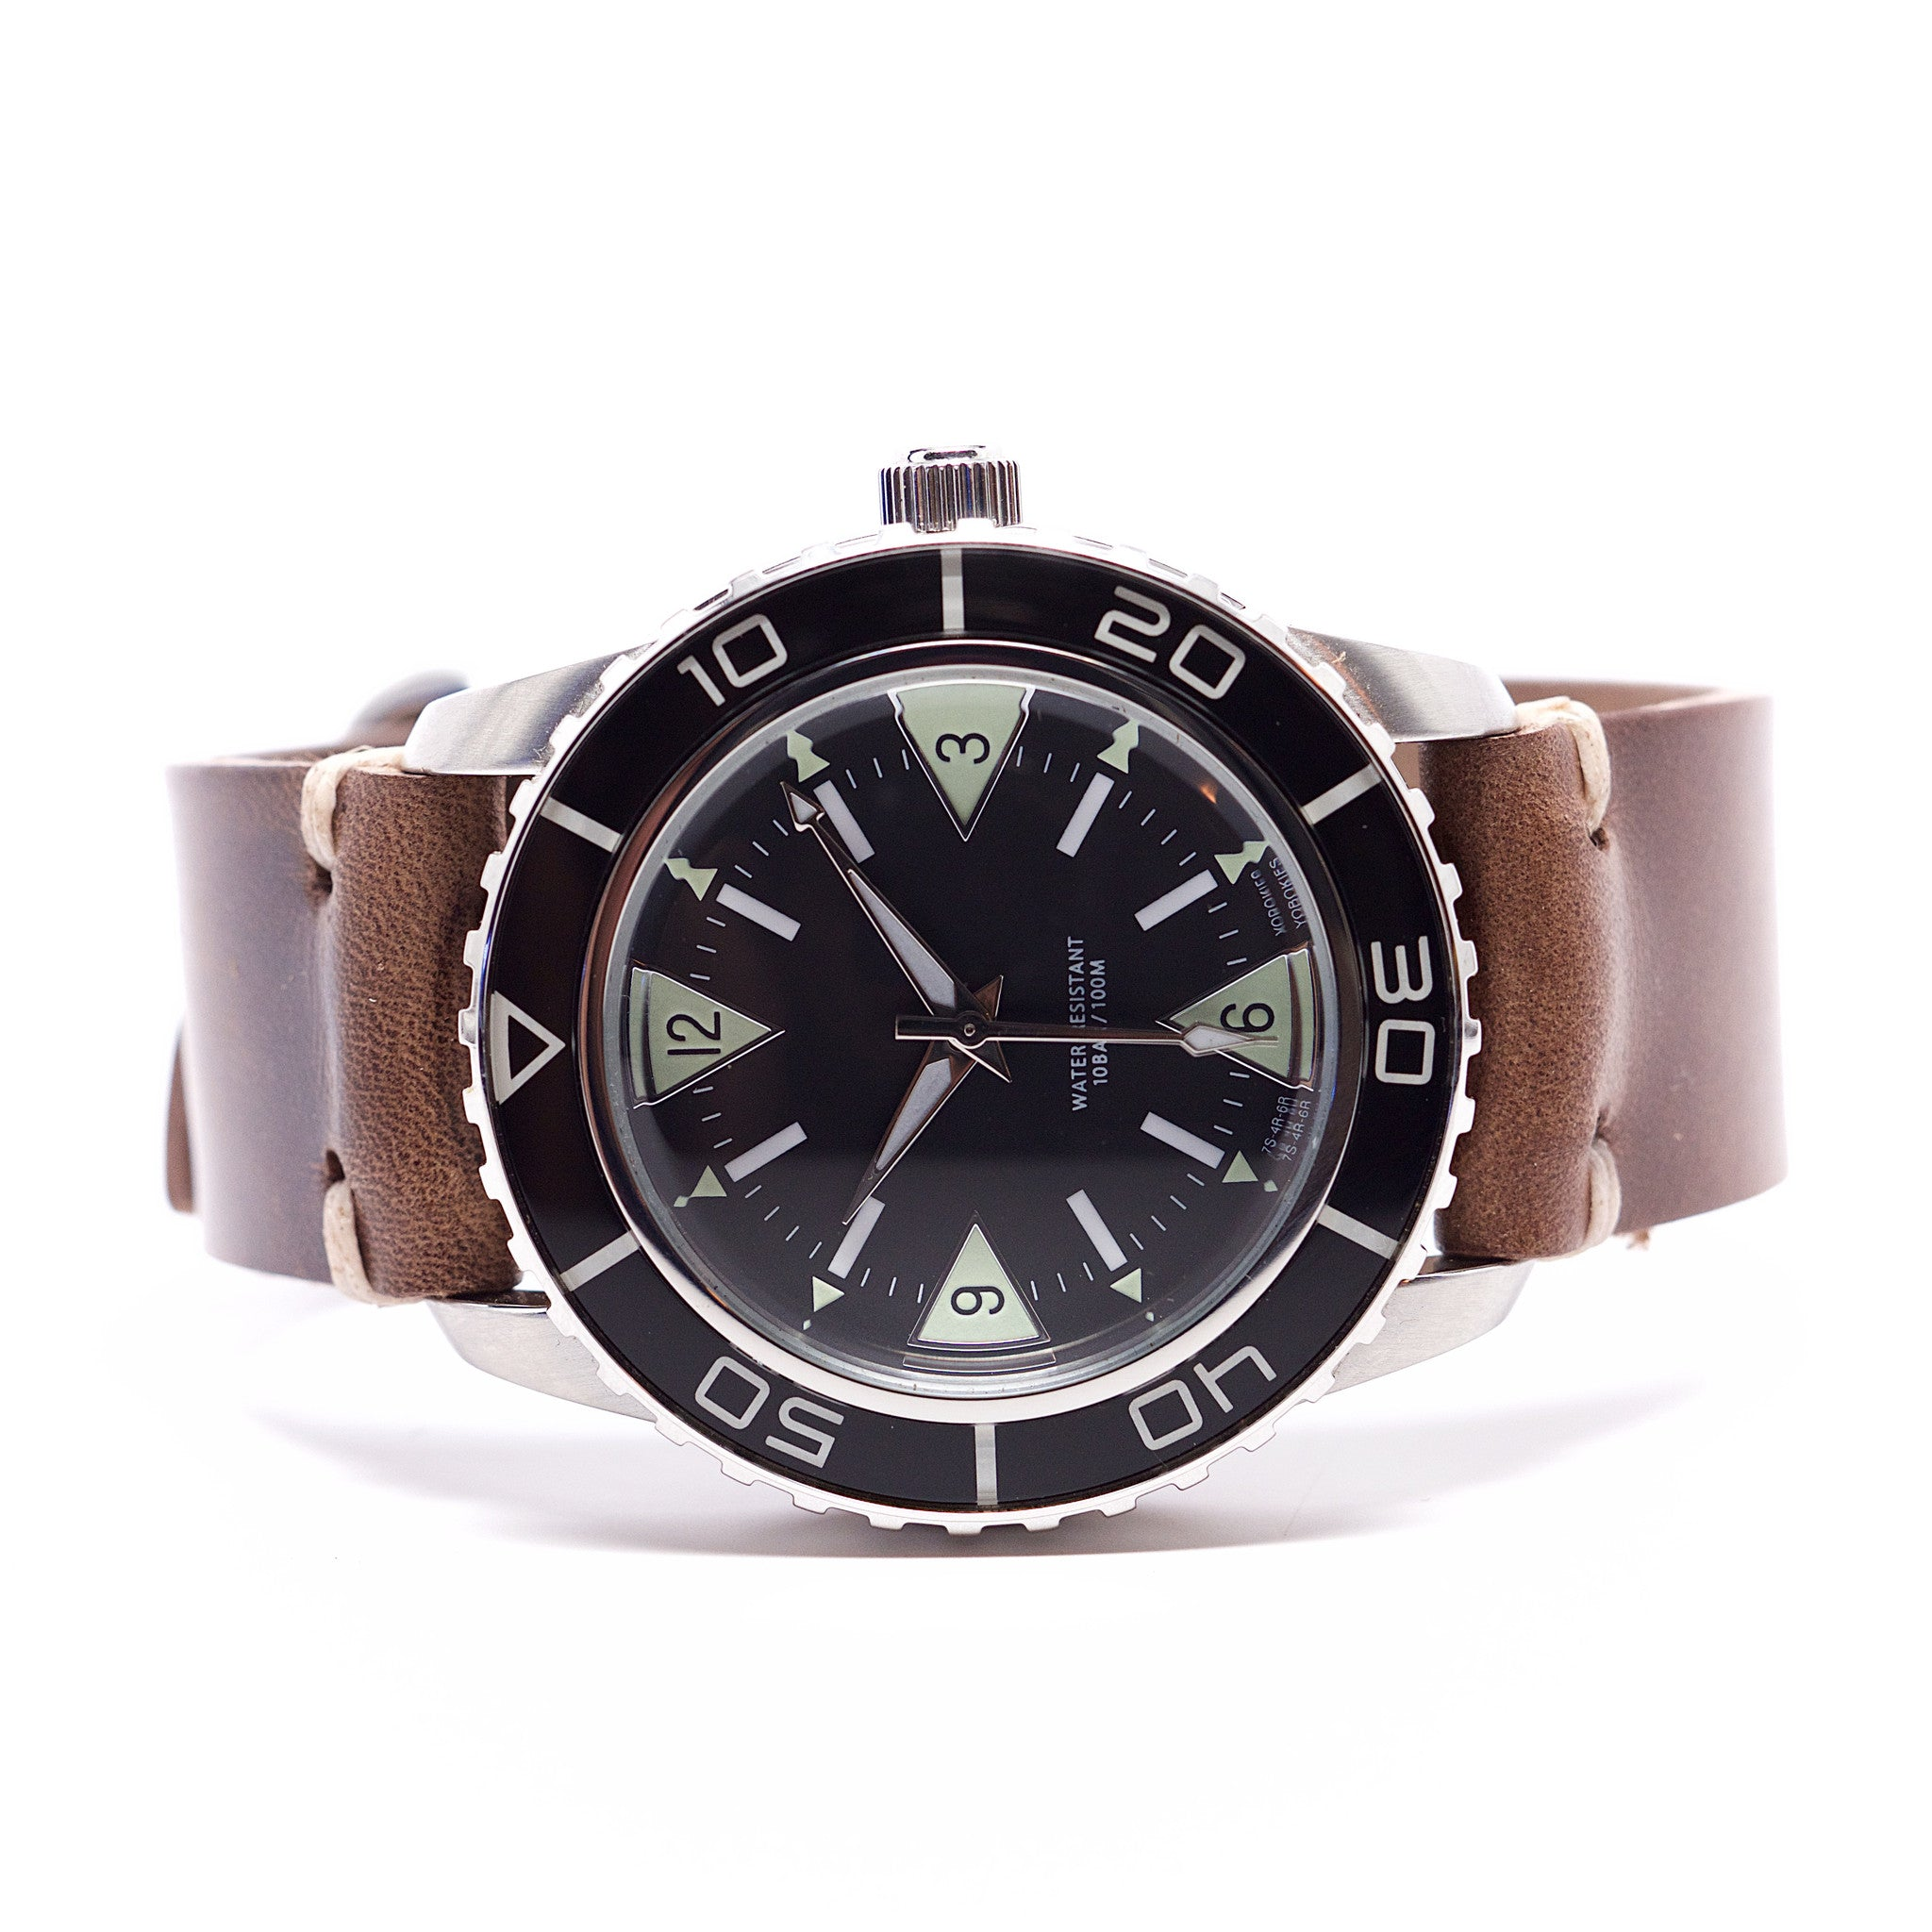 E3 Seiko Retro Mod 42mm Automatic Watch: Vintage Diver